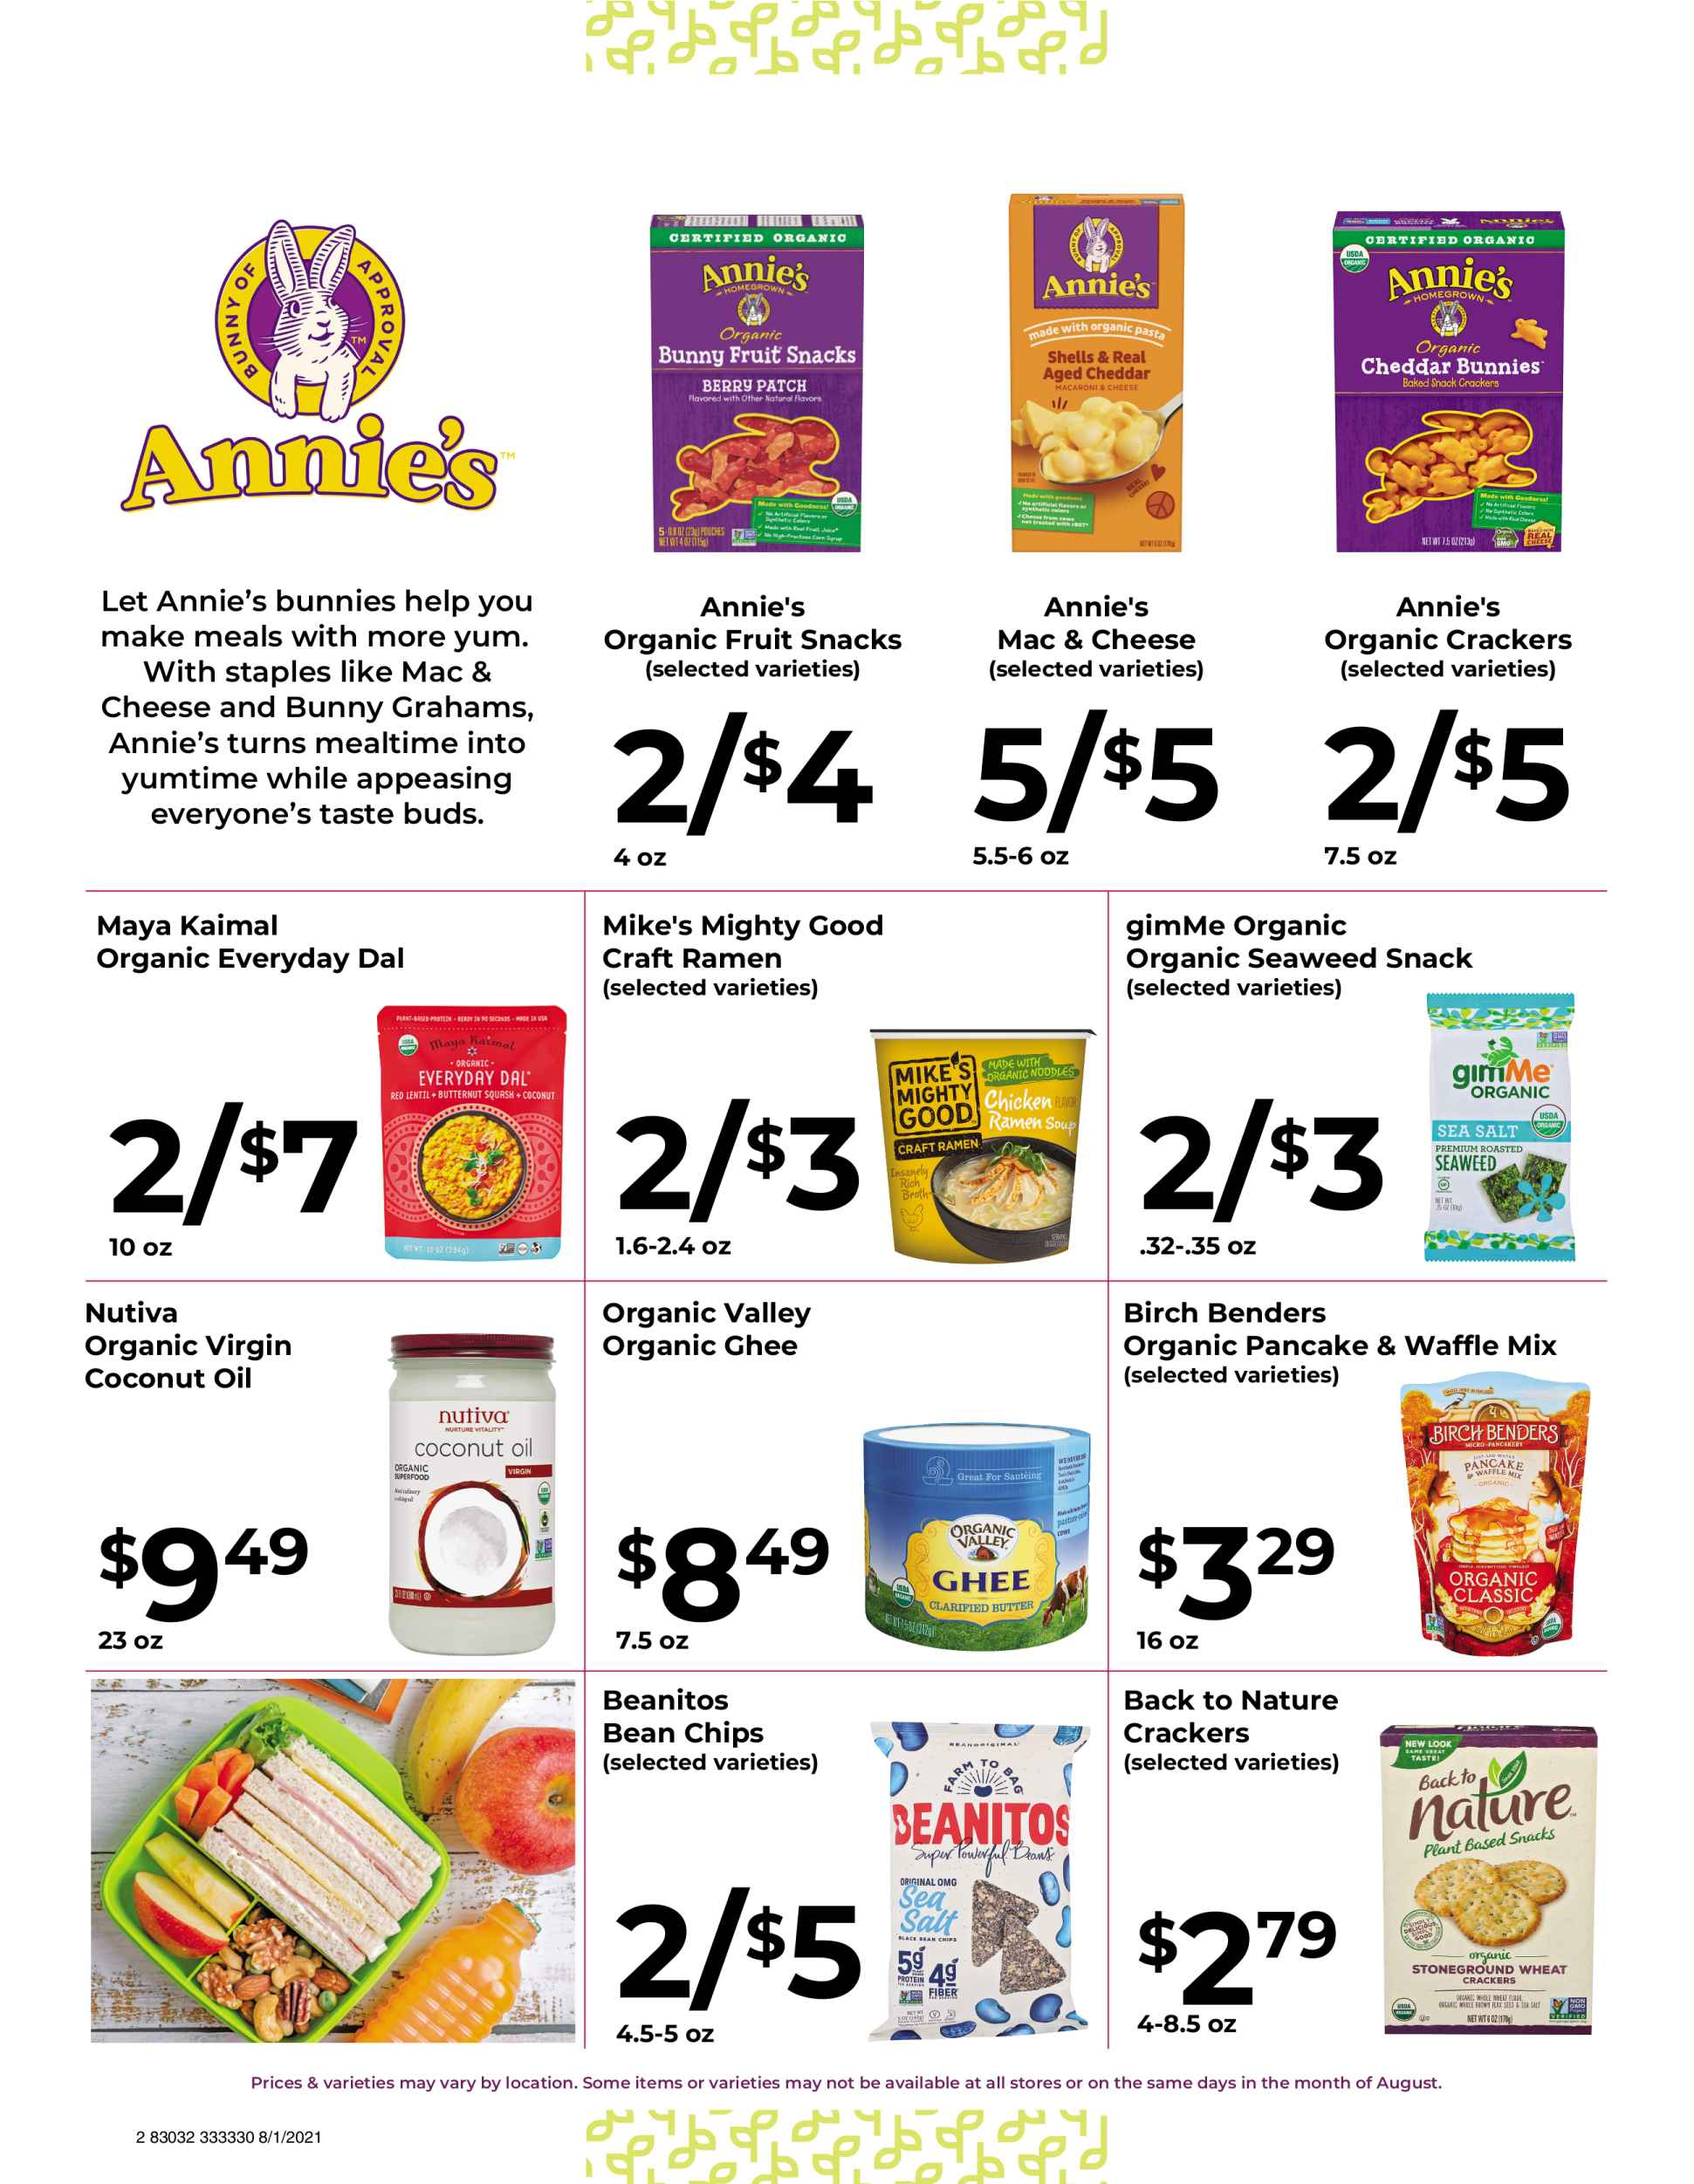 Natures pick market monthly sale page 2